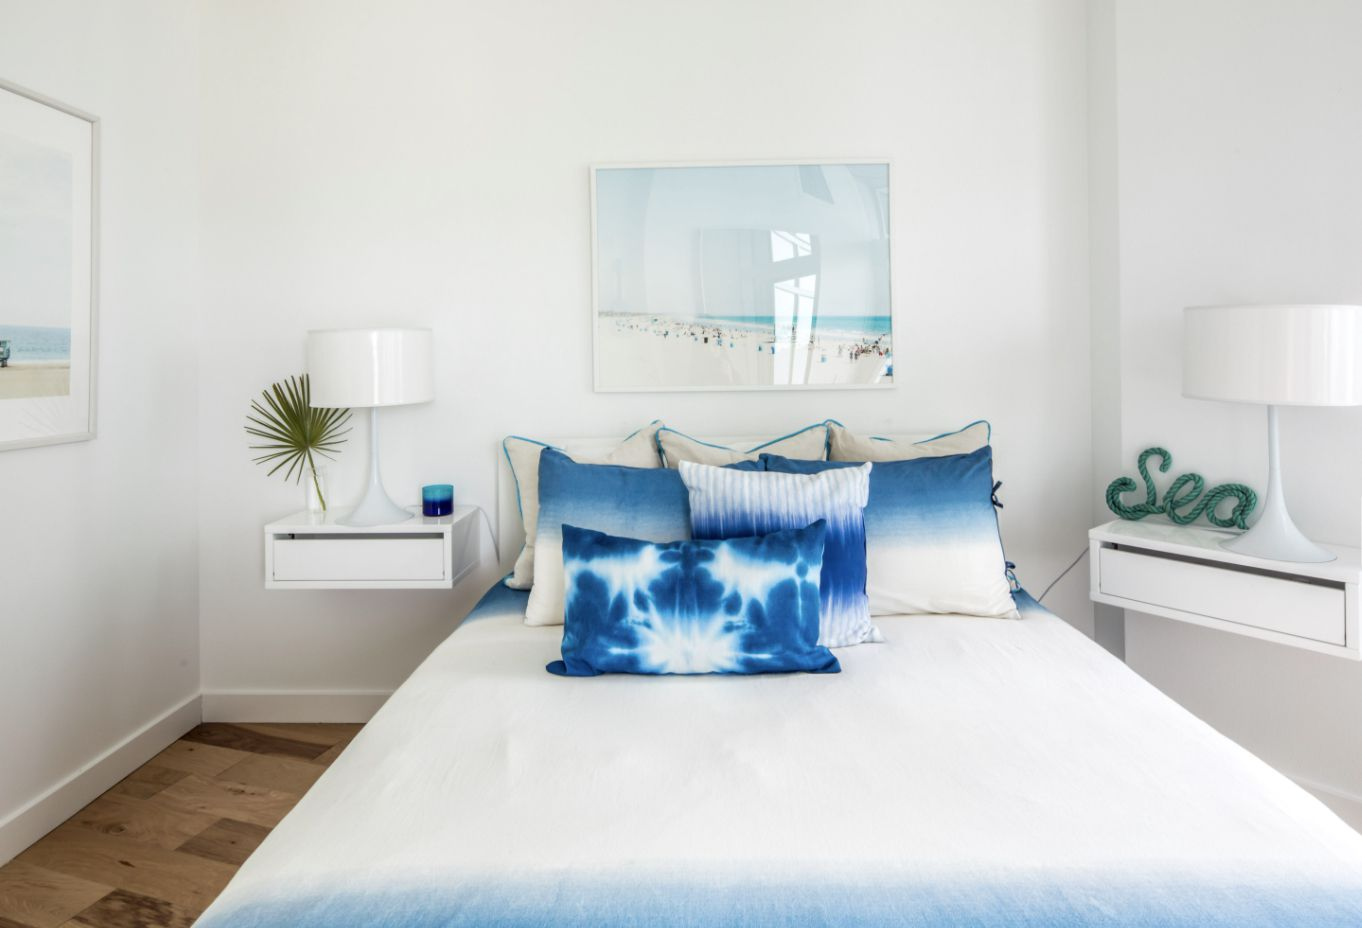 bedroom with floating shelves for nightstands